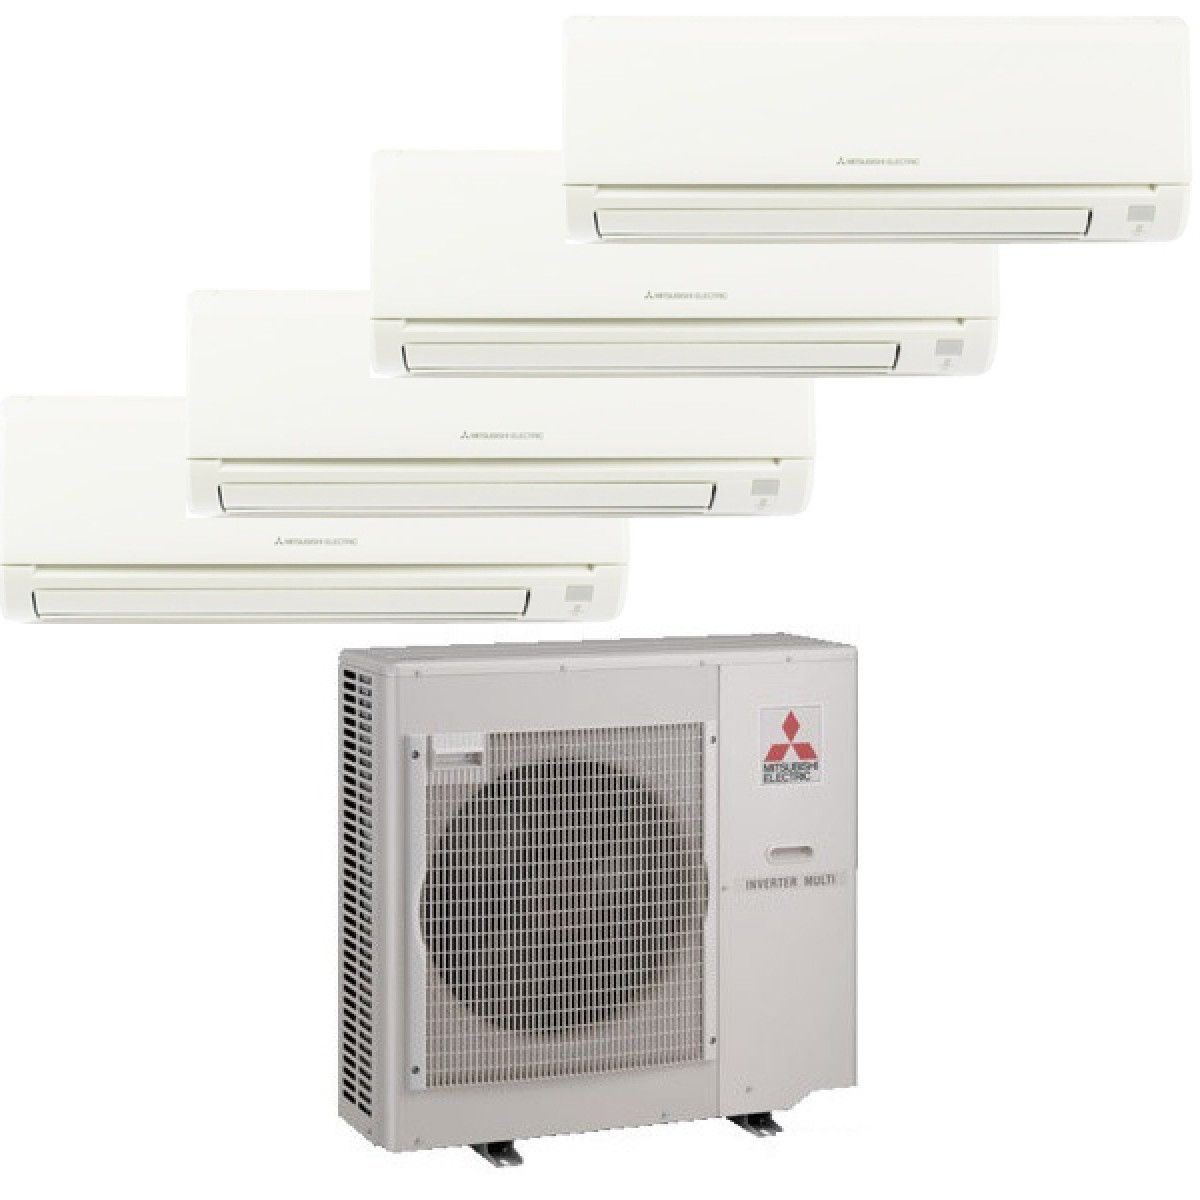 #8F3C45 Mitsubishi Mr Slim 4 Zone Heat Pump With (3) 9K Btu Indoor  Most Effective 11785 Ductless Air Conditioning Units pictures with 1200x1200 px on helpvideos.info - Air Conditioners, Air Coolers and more